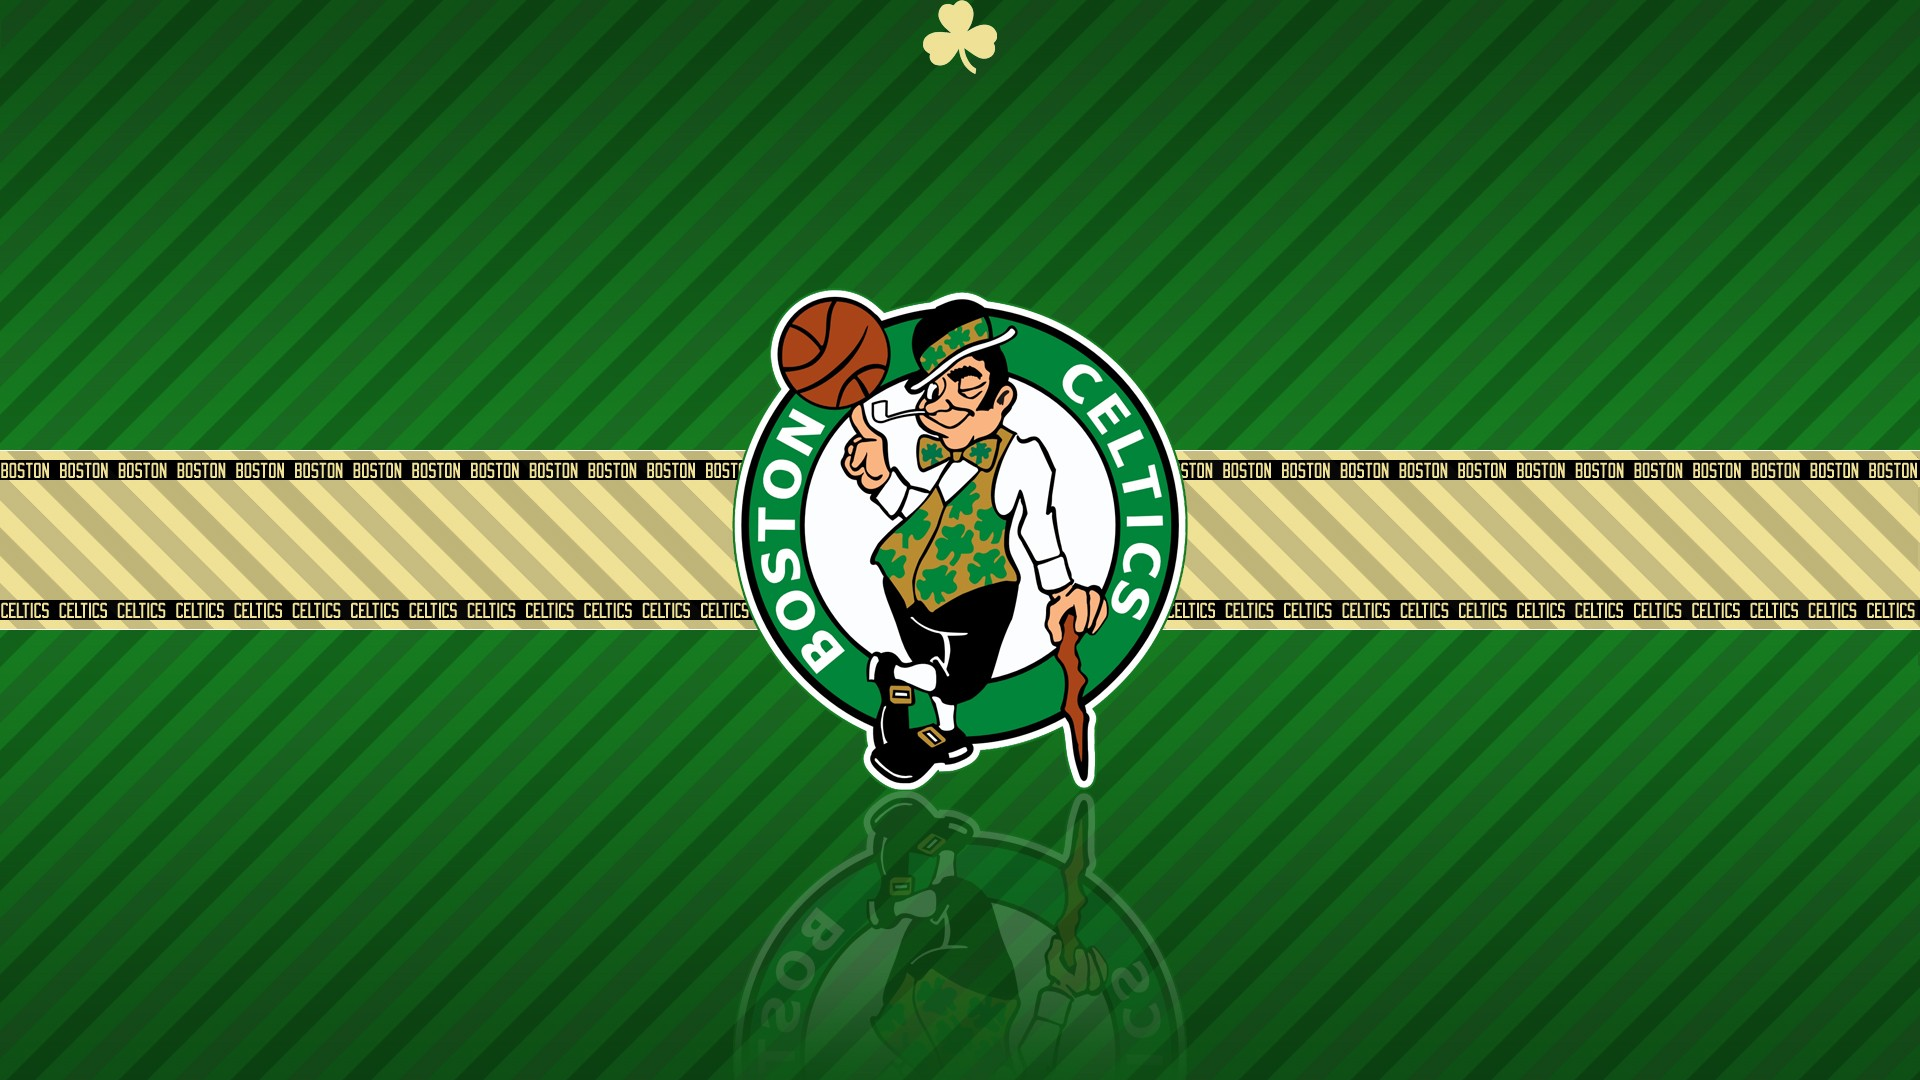 Boston Celtics Full HD Wallpaper And Background Image